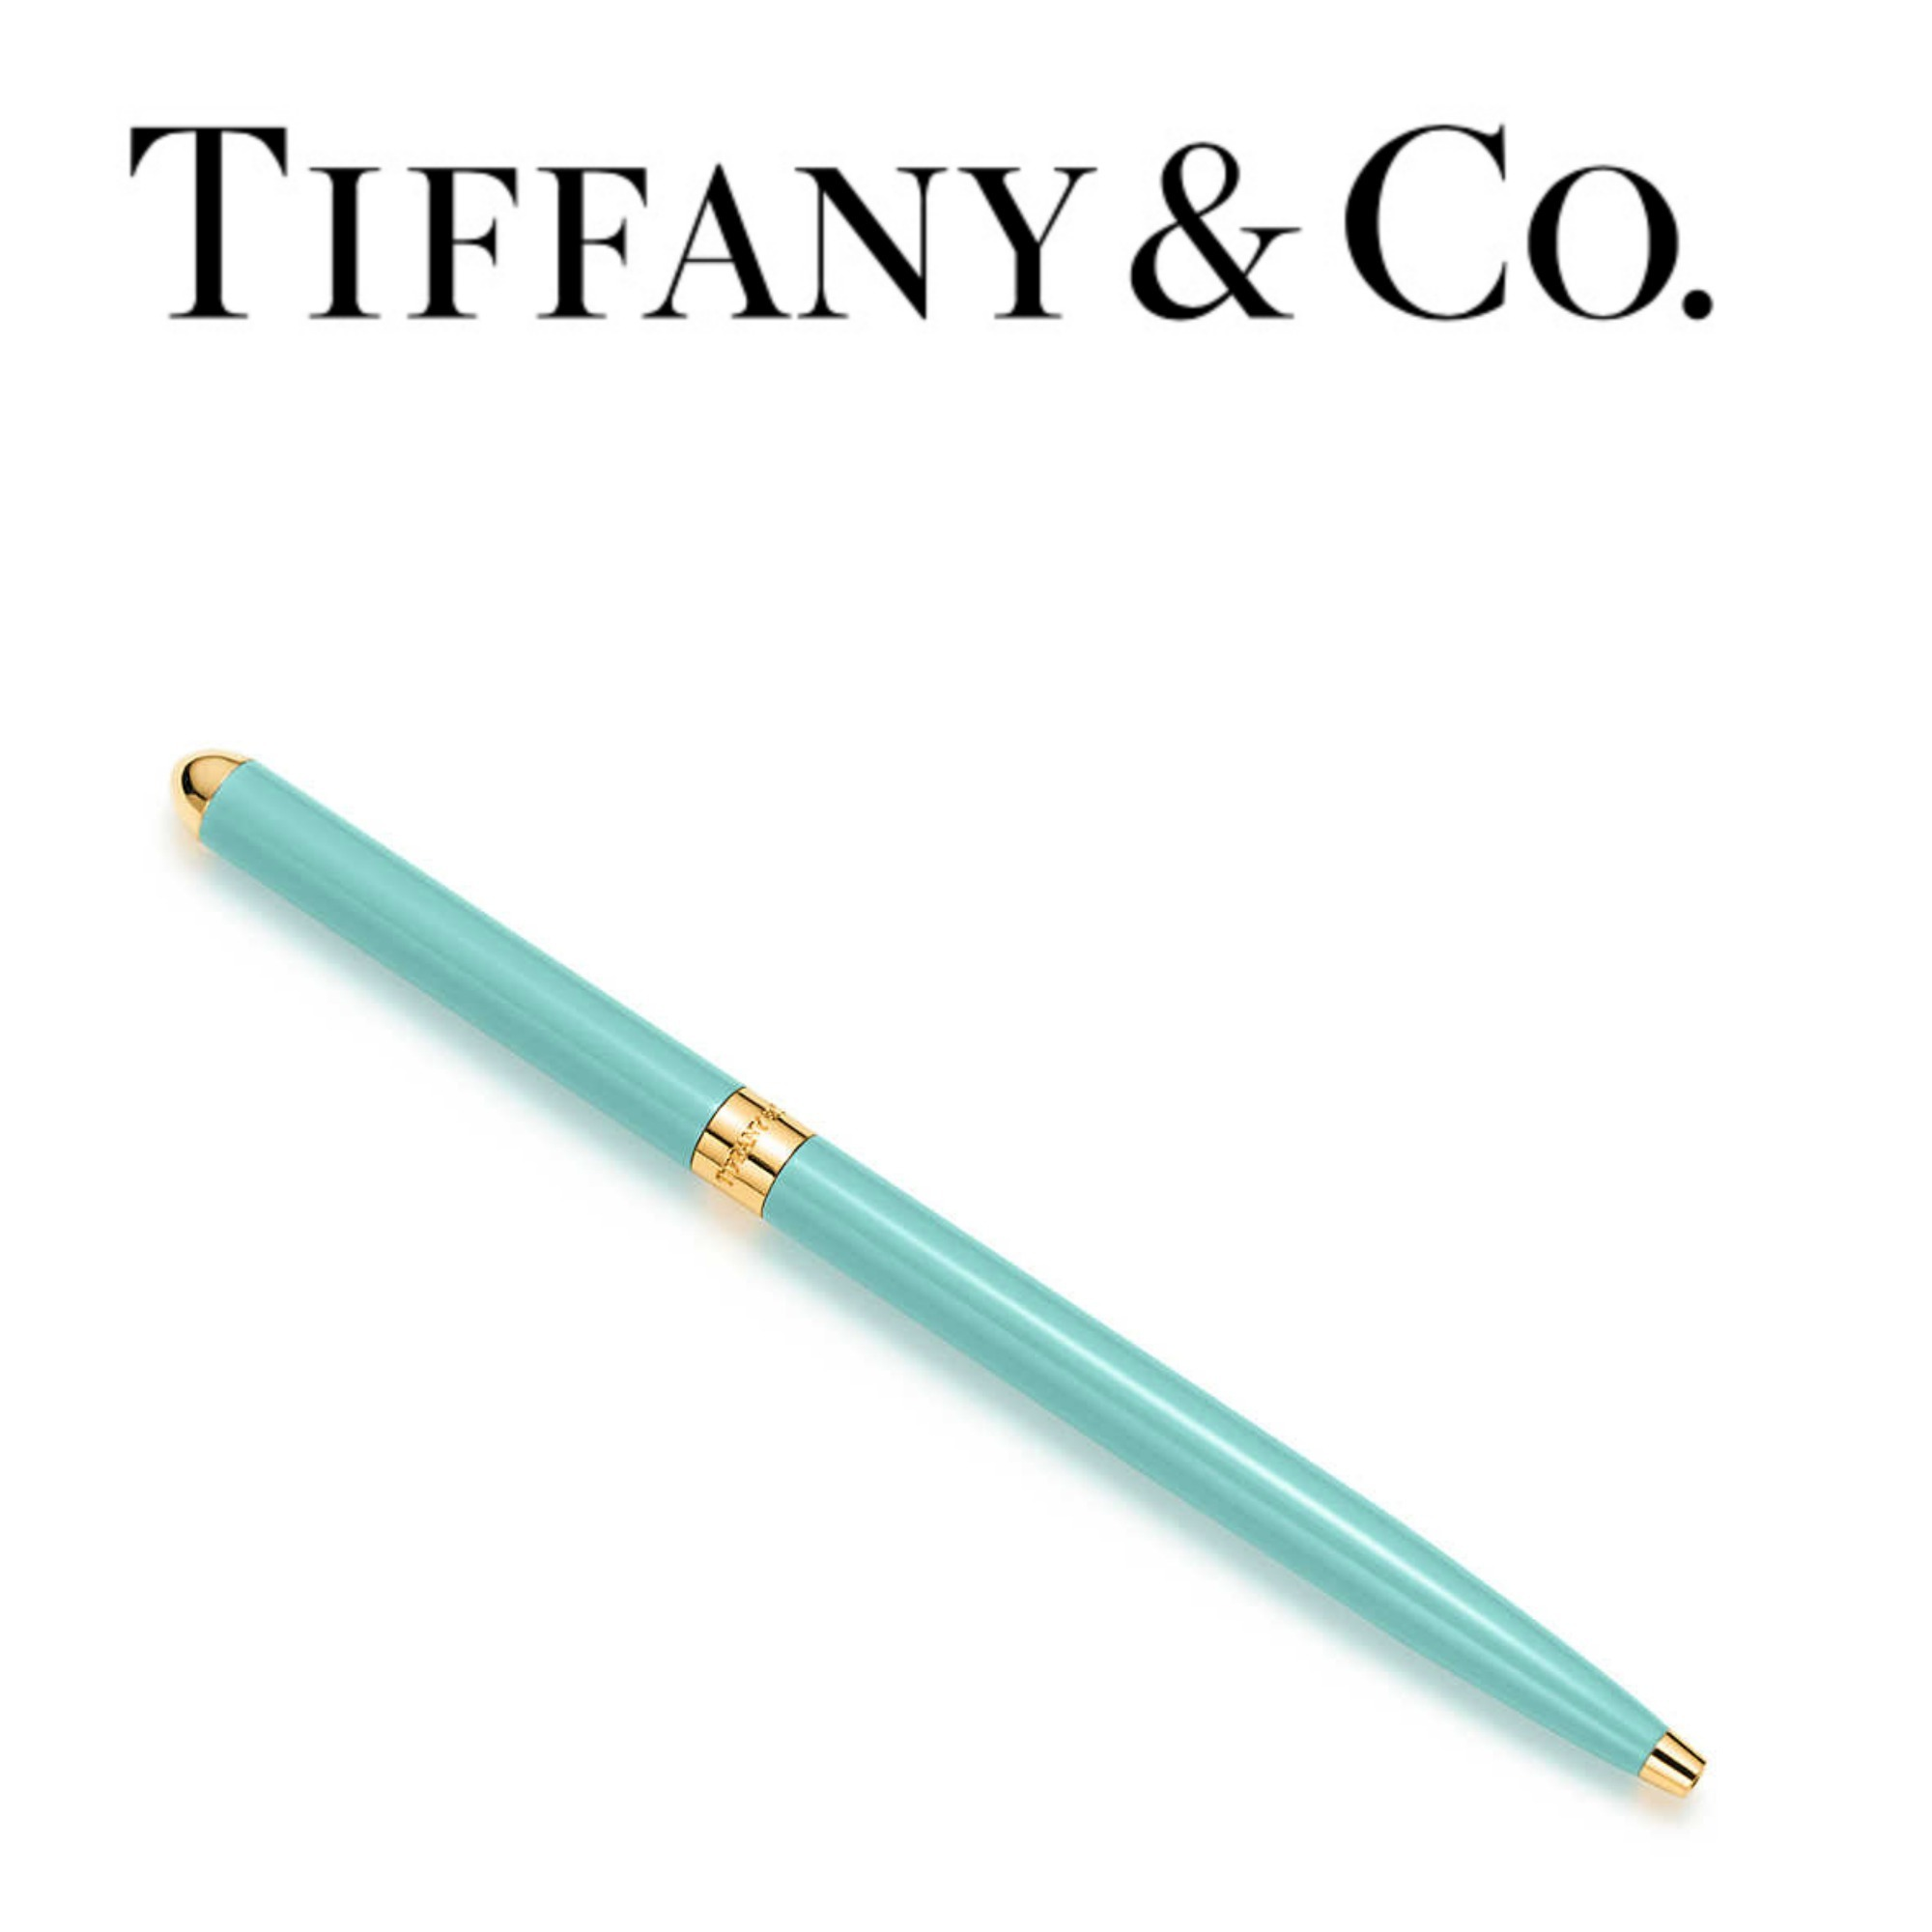 【TIFFANY&CO】●大人気●Tiffany Blue Purse Pen